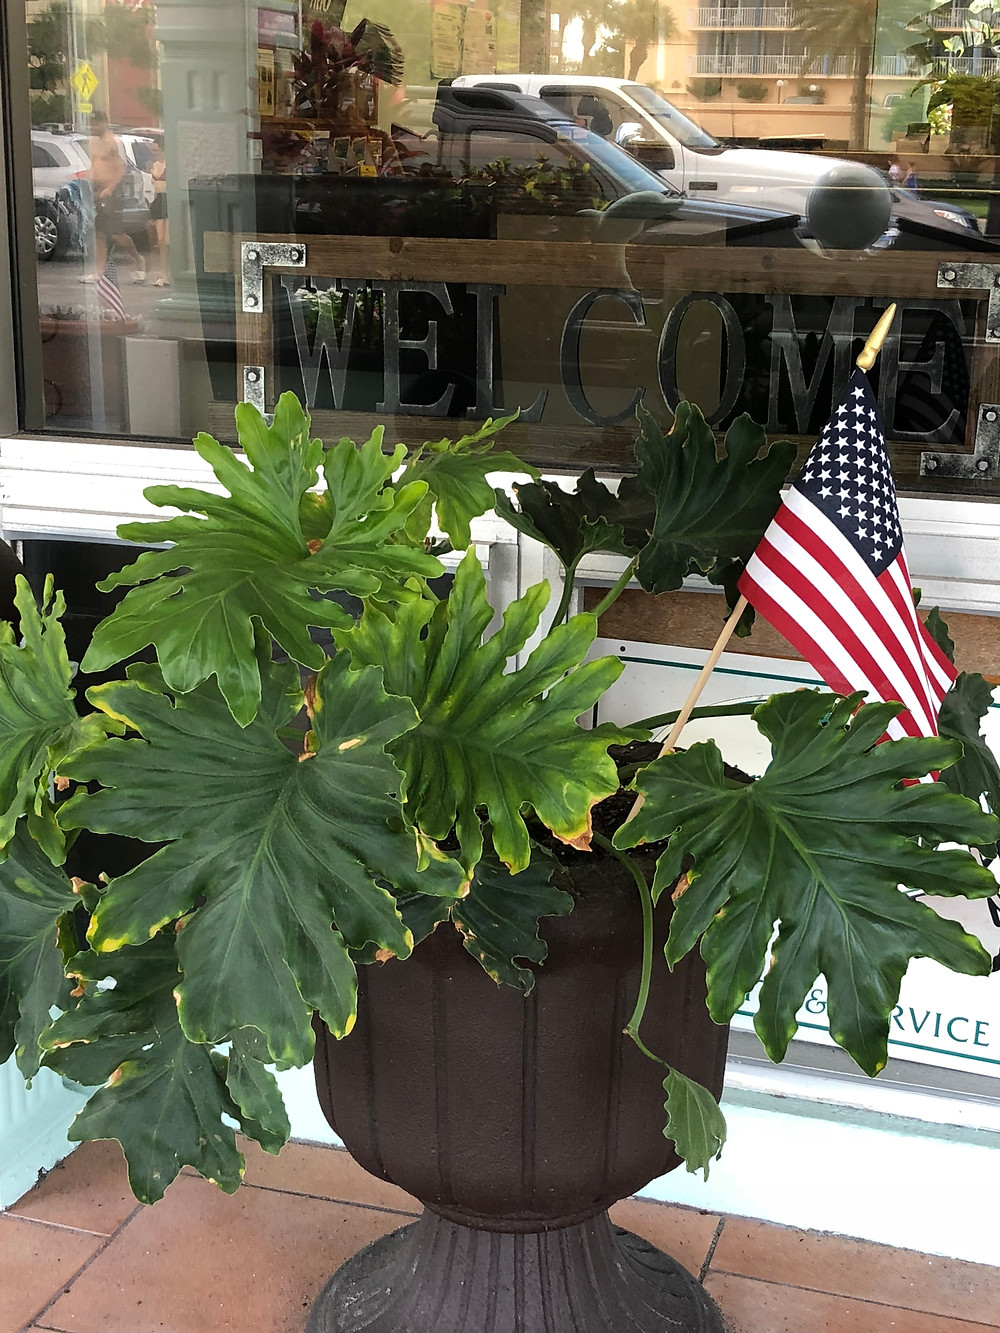 Welcome sign in front window of lobby with planter and American flag